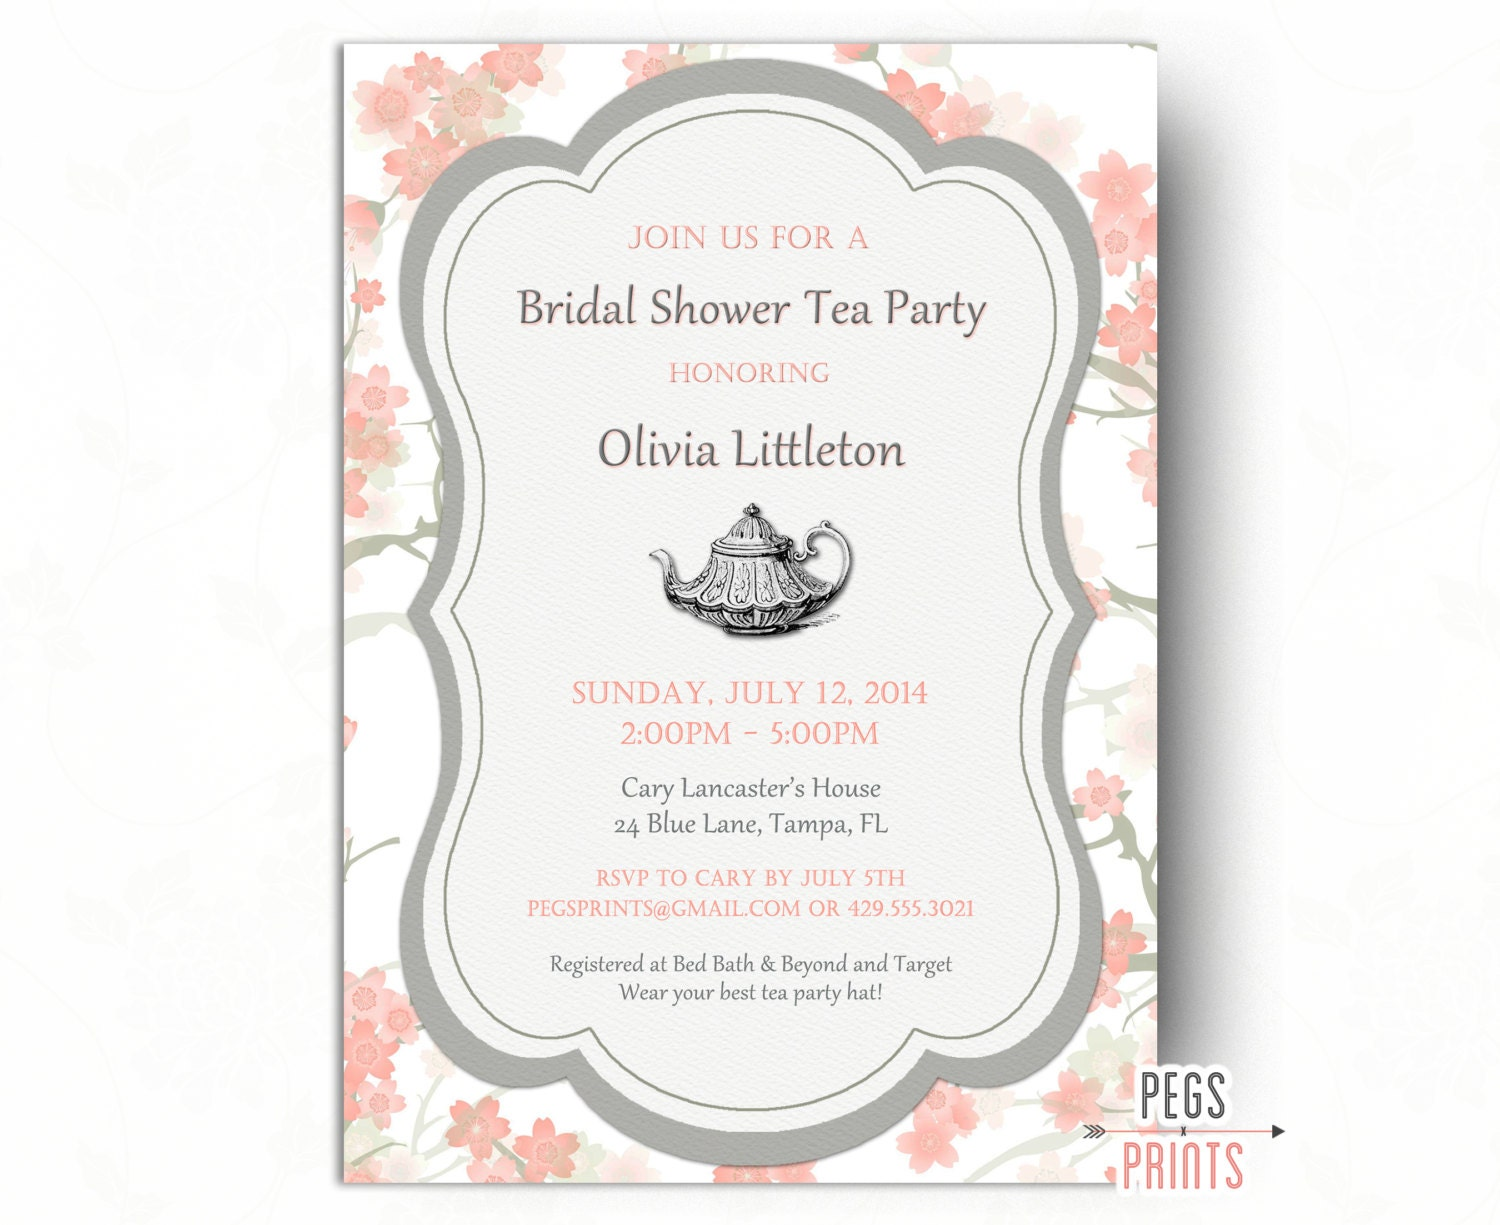 Floral bridal shower tea party invitation printable bridal zoom filmwisefo Image collections